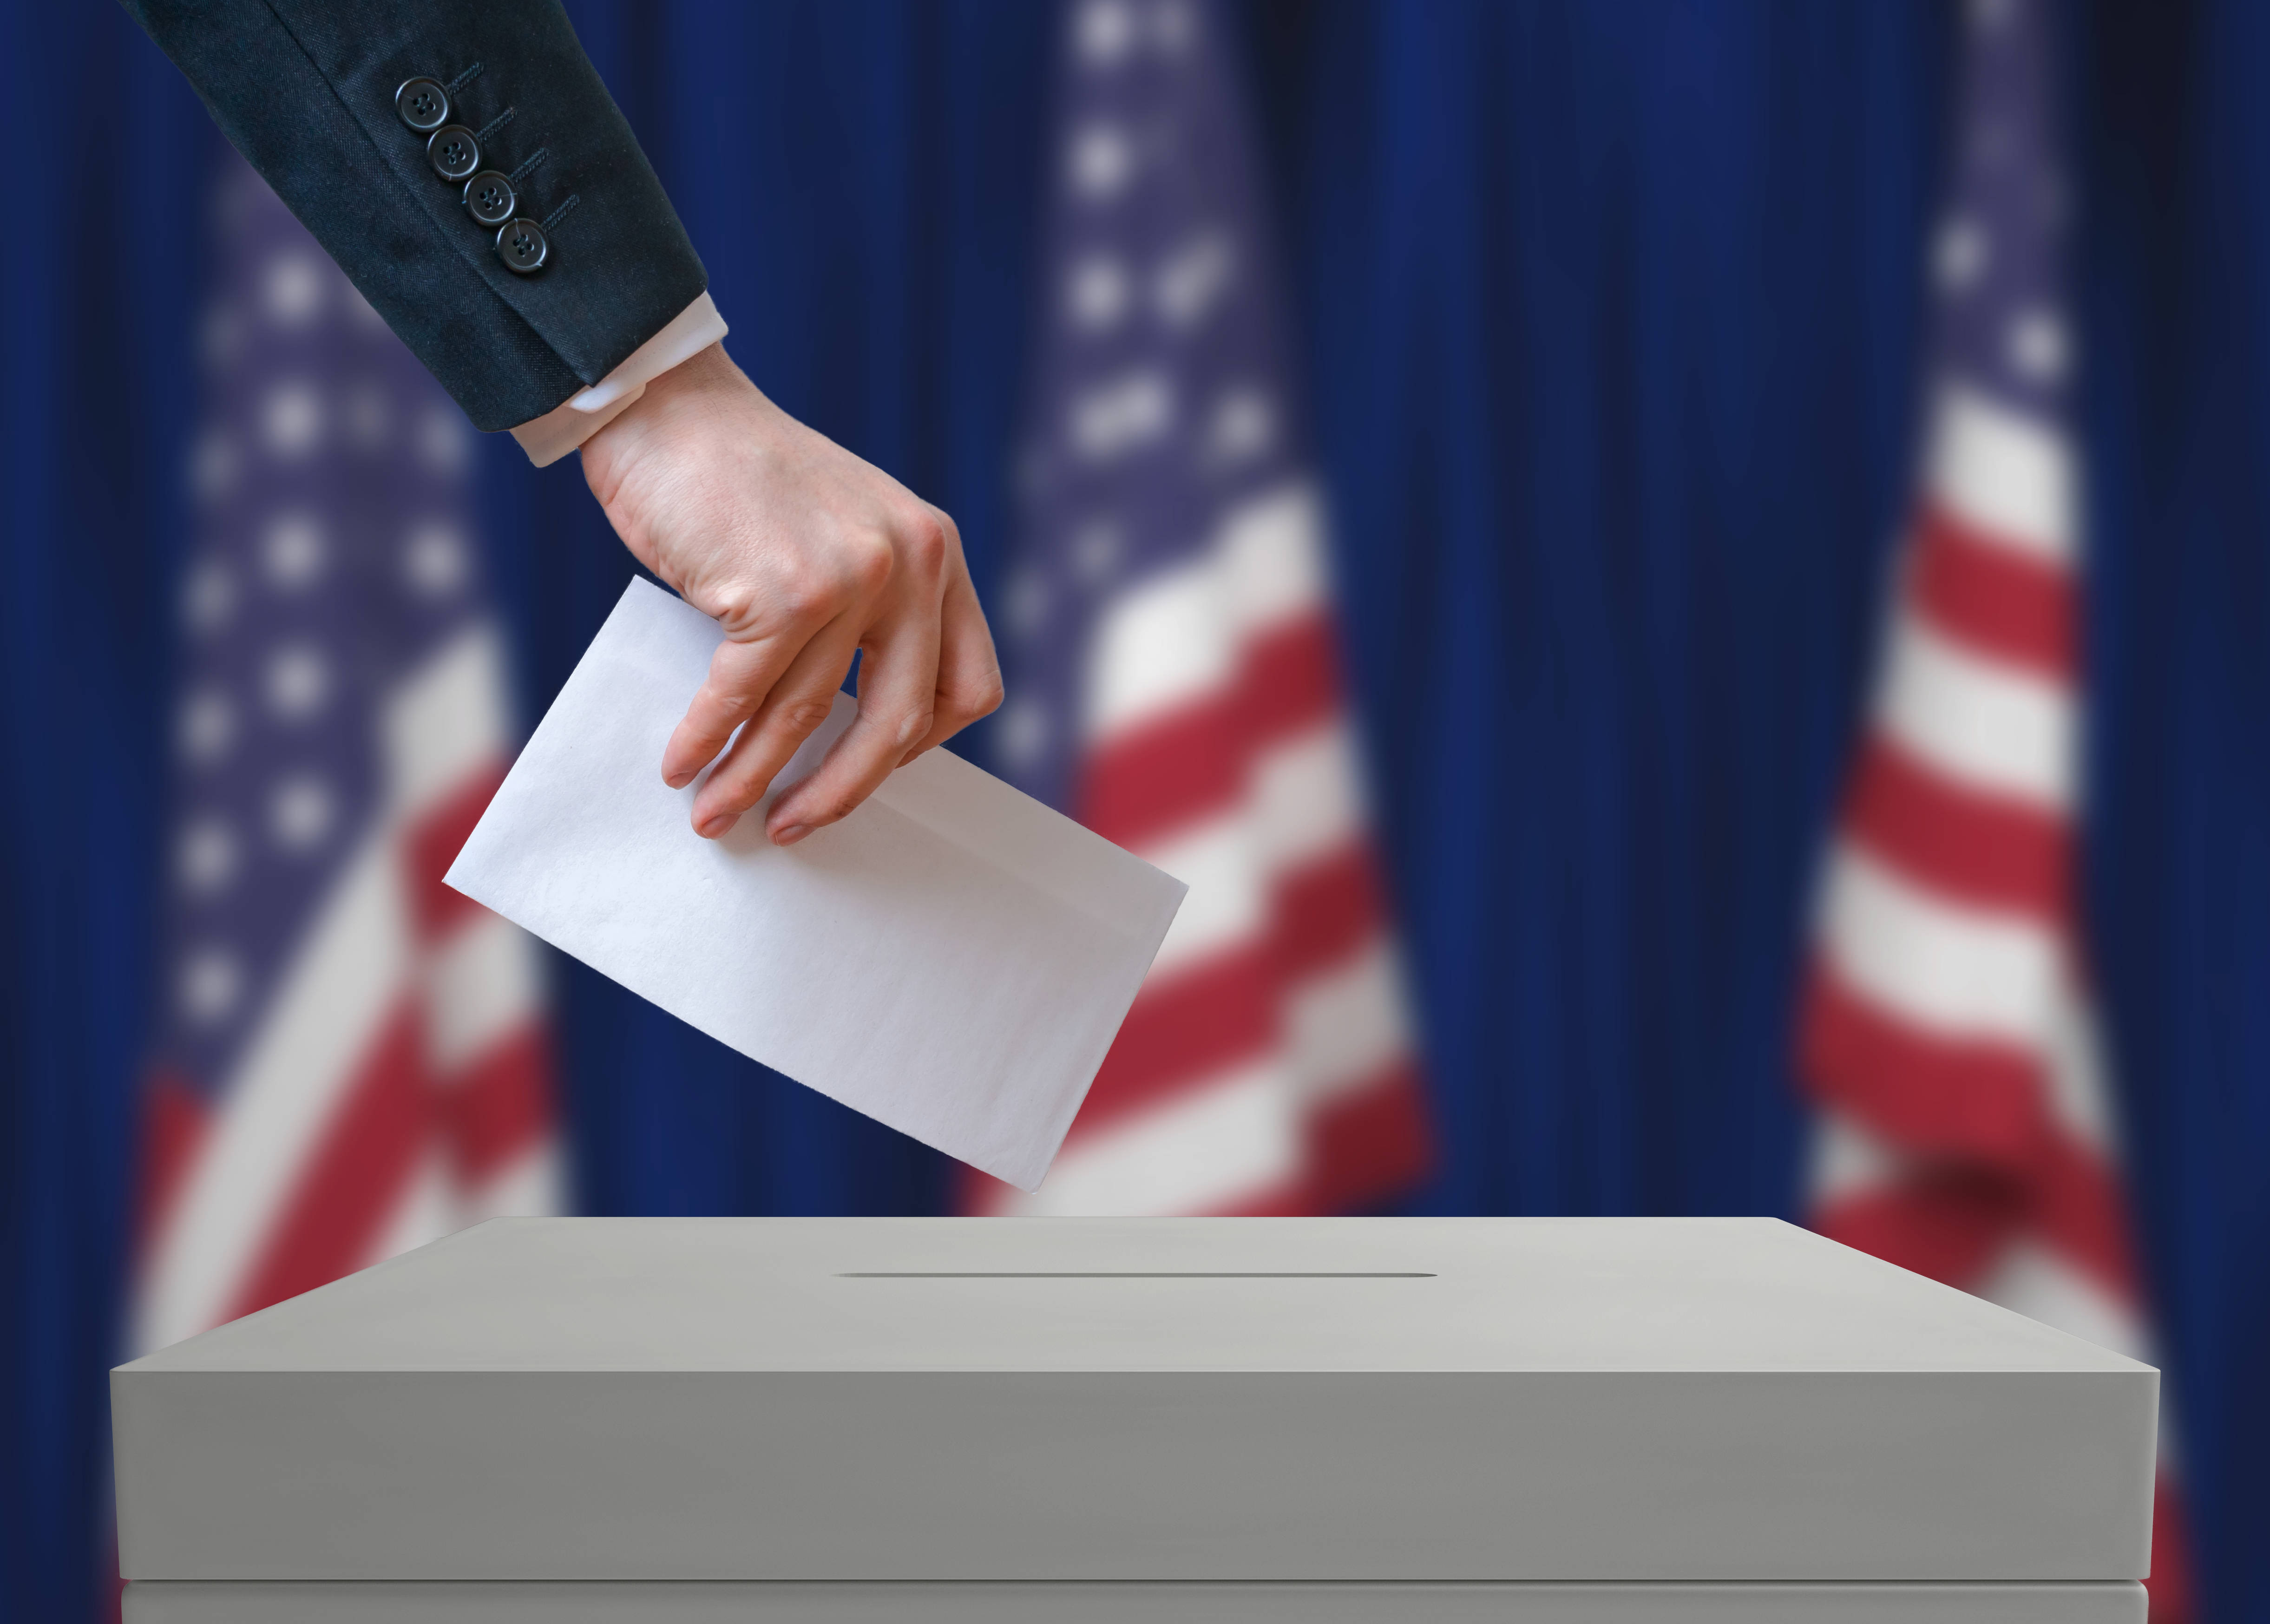 The Role of Challengers in an Election